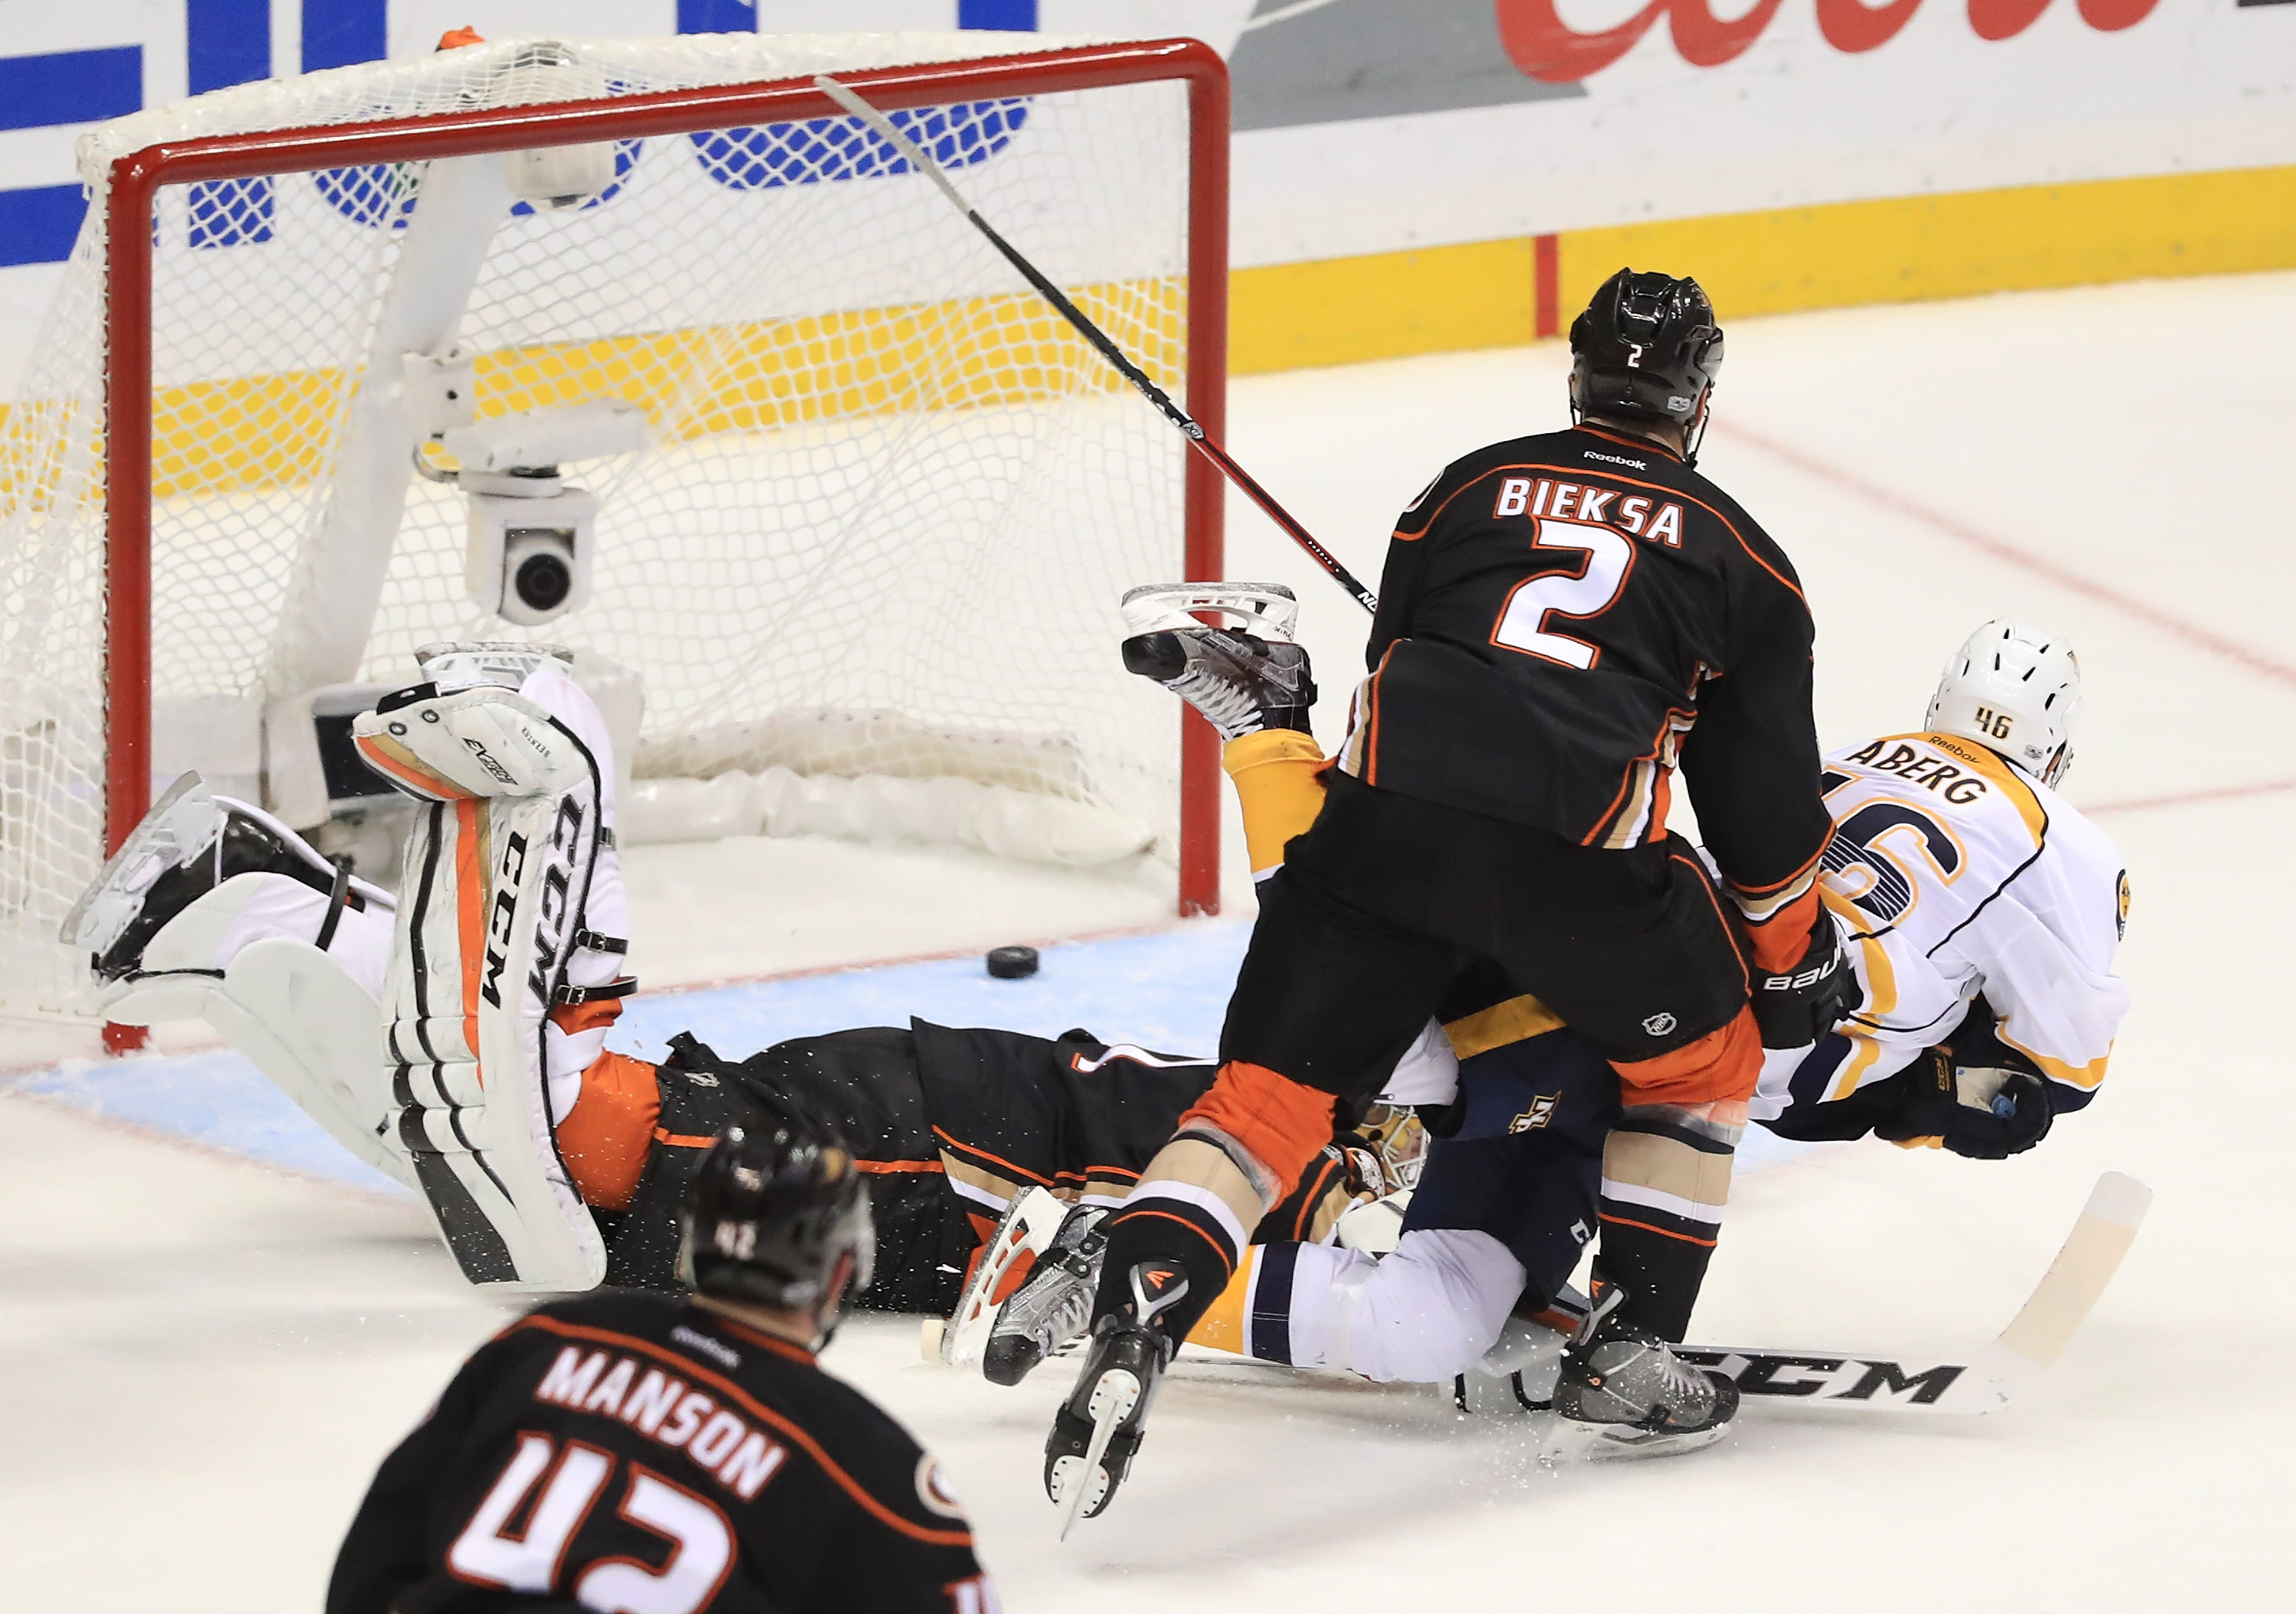 Gibson out, Bernier makes 1st playoff start in net for Ducks